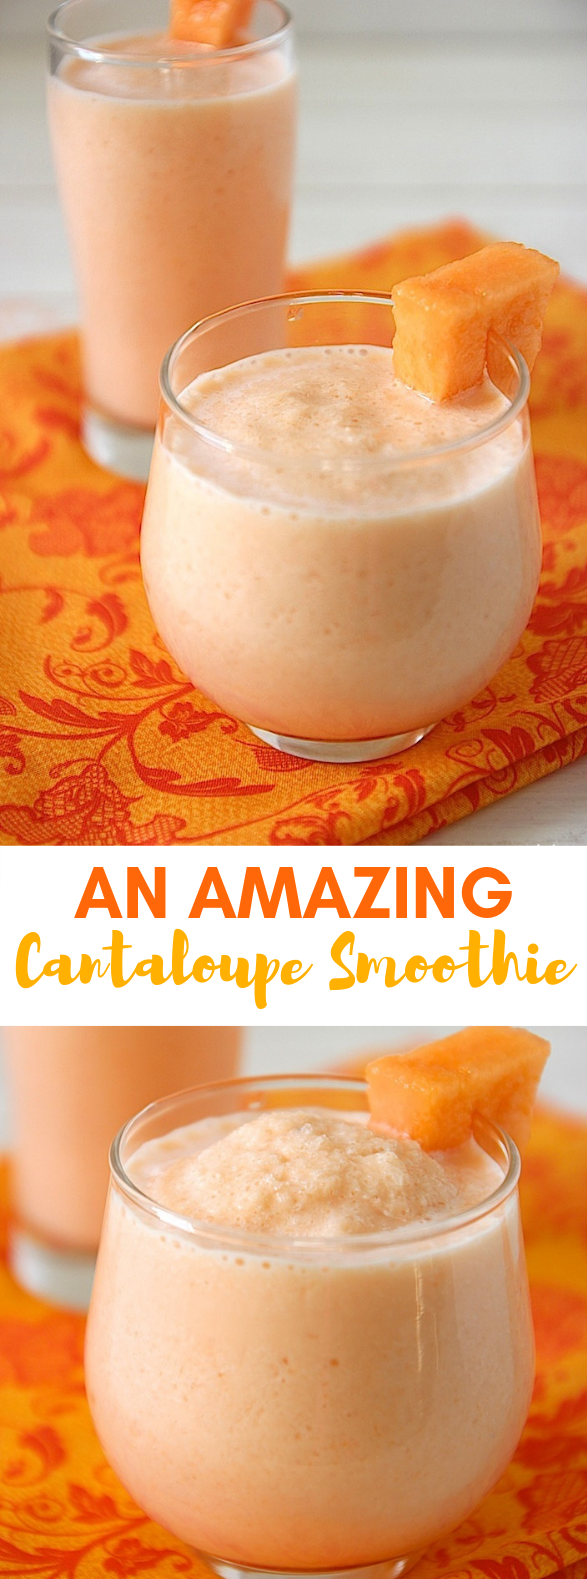 AN AMAZING CANTALOUPE SMOOTHIE RECIPE #drink #smoothies